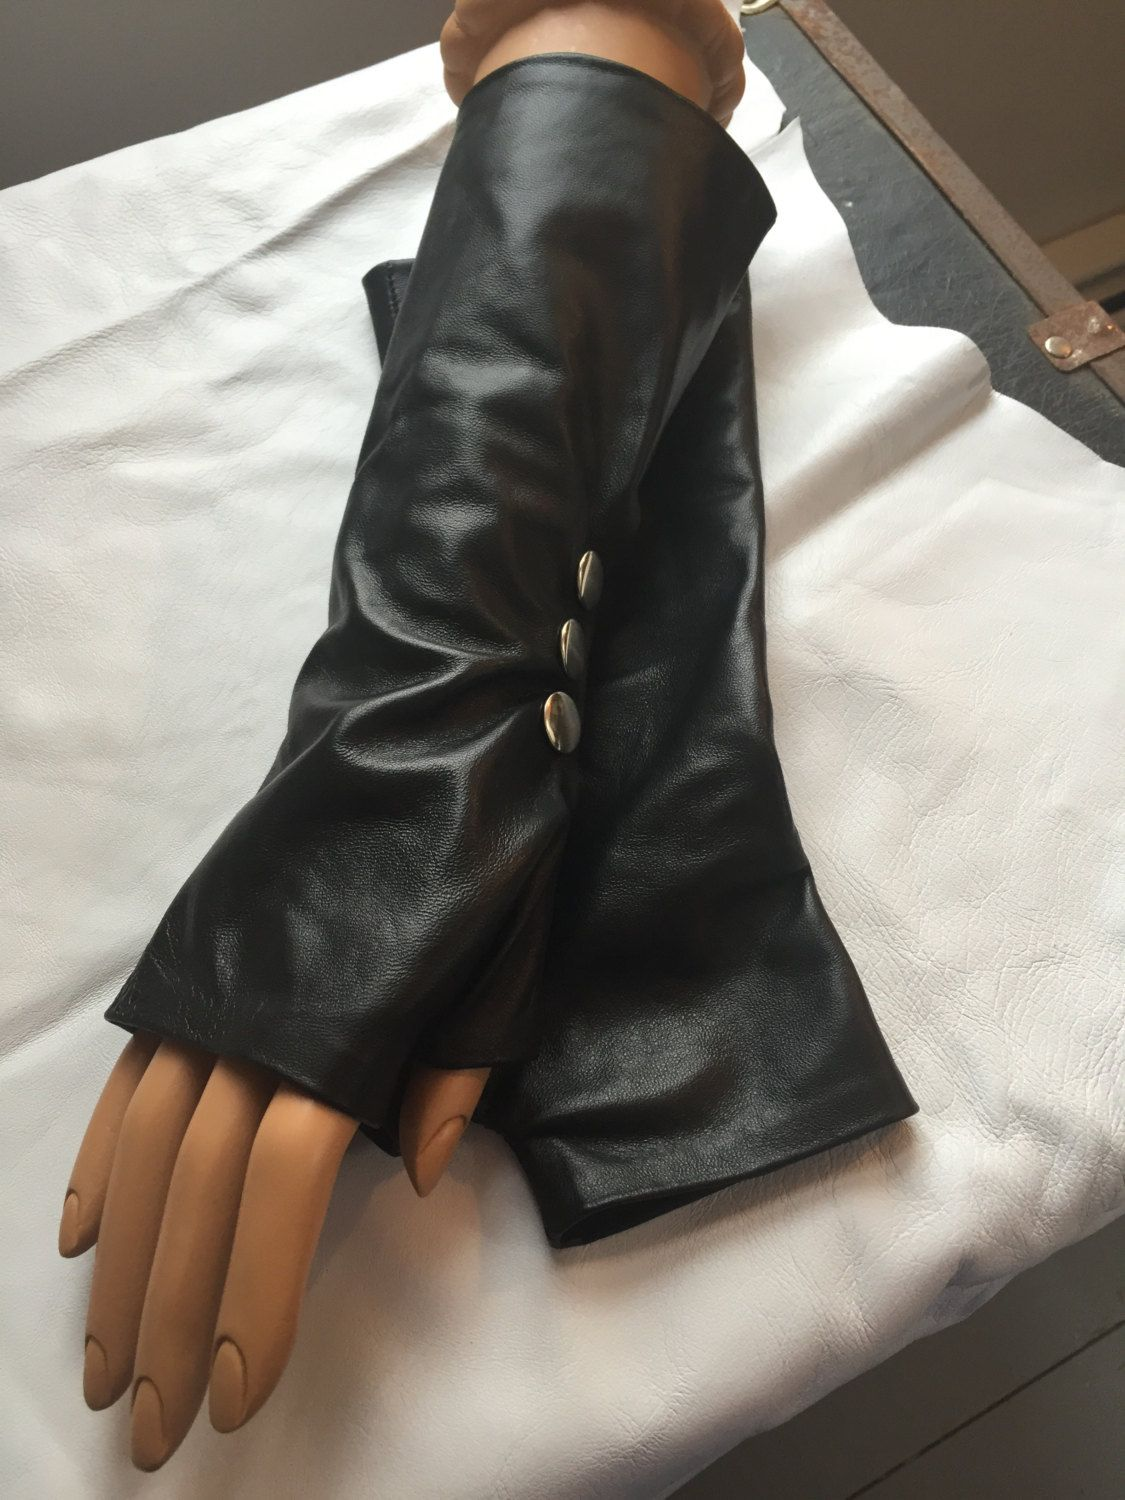 Black leather gloves small - Black Lamb Leather Gloves With 3 Silver Snaps It Feels Good To Wear Them Very Soft I Make Them Handmade In Small Medium Larges